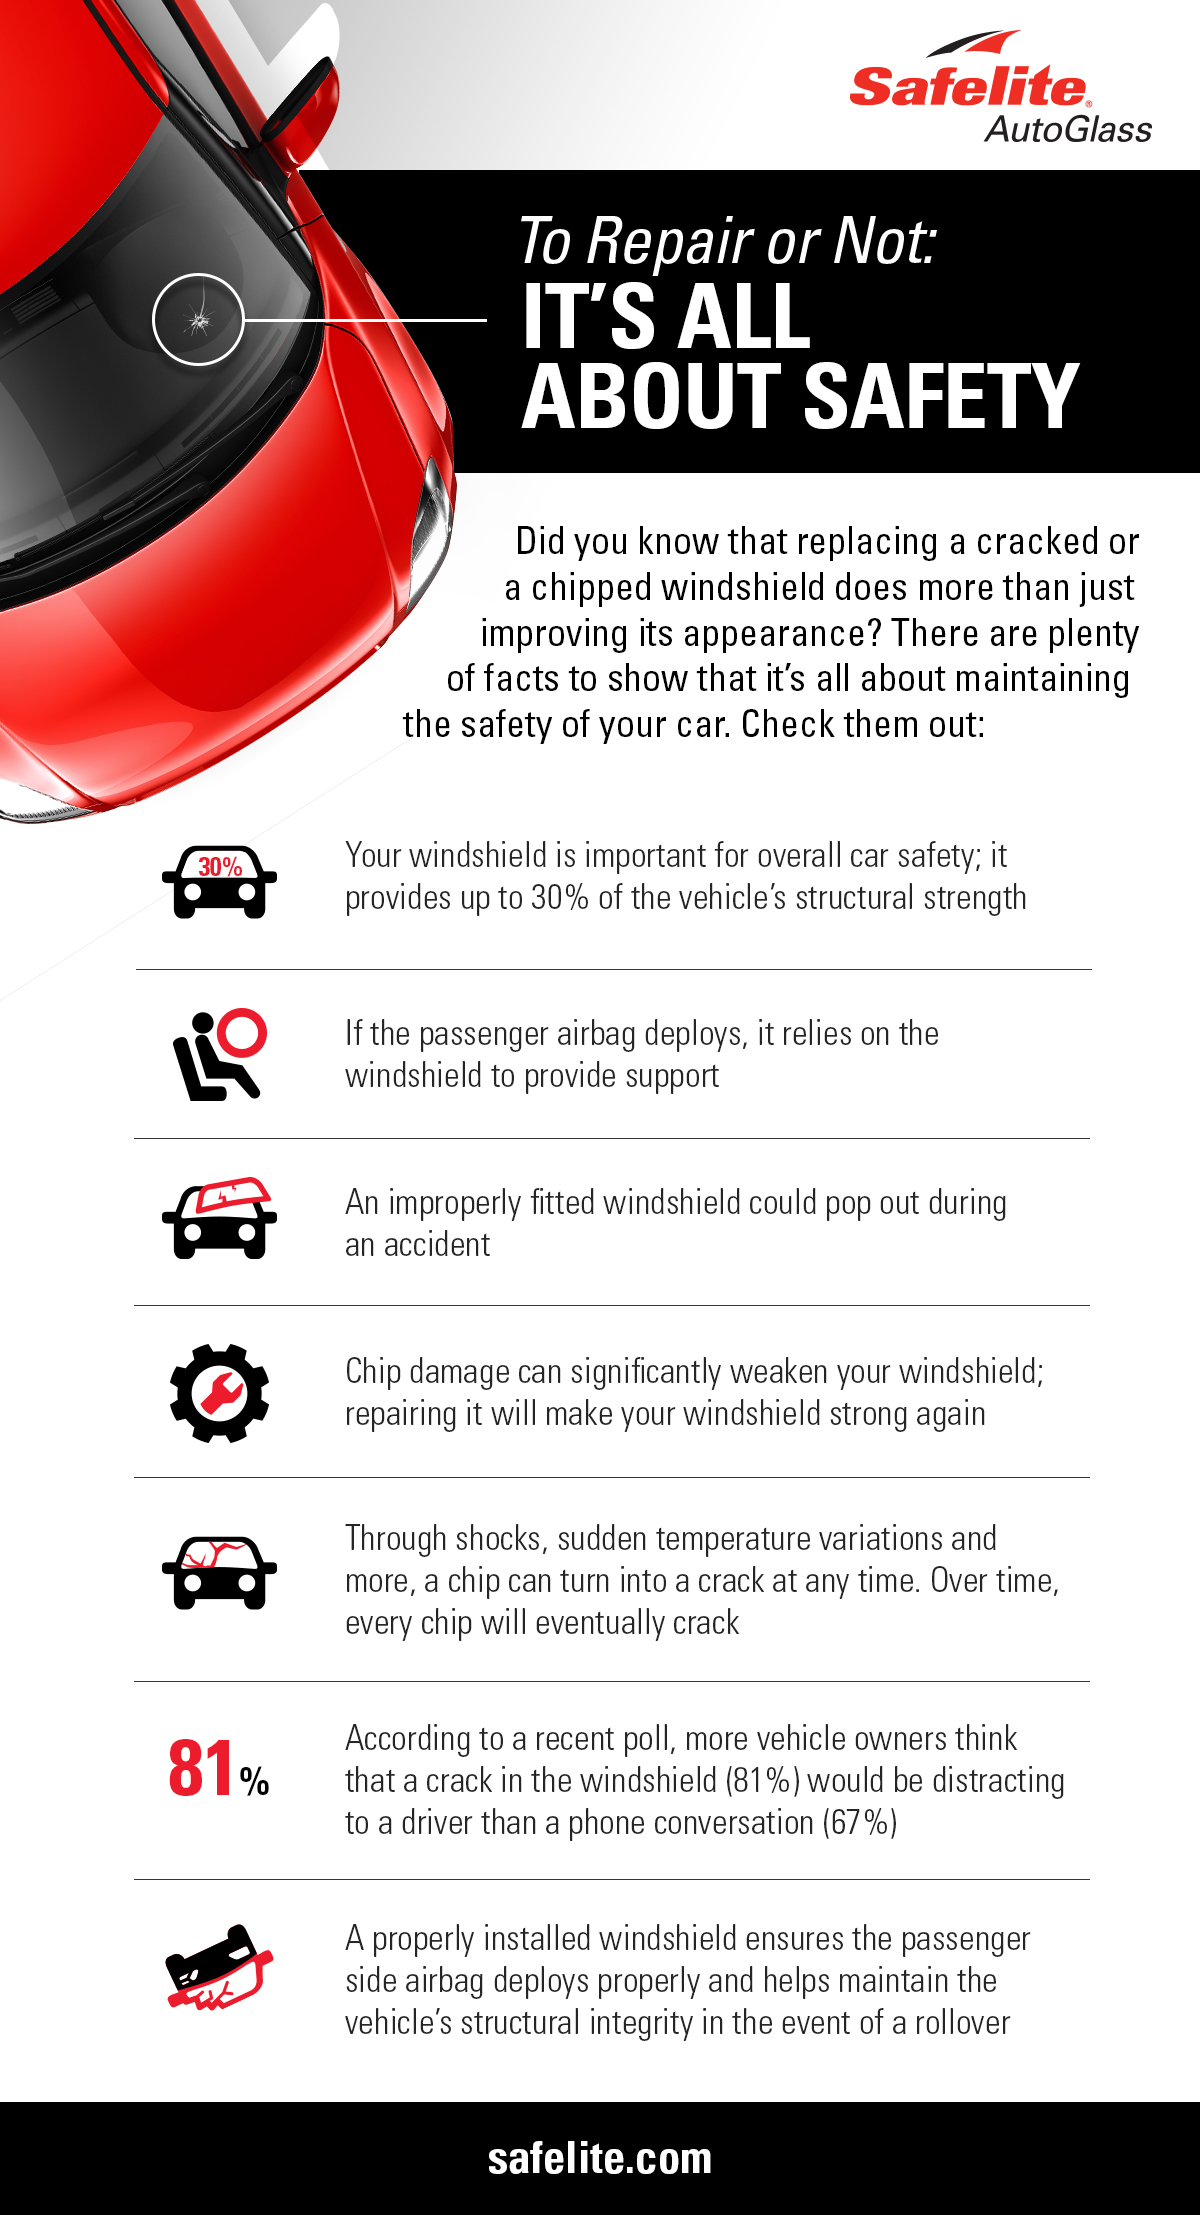 Safelite shares why windshield repair is important because your windshield is related to your car's safety.